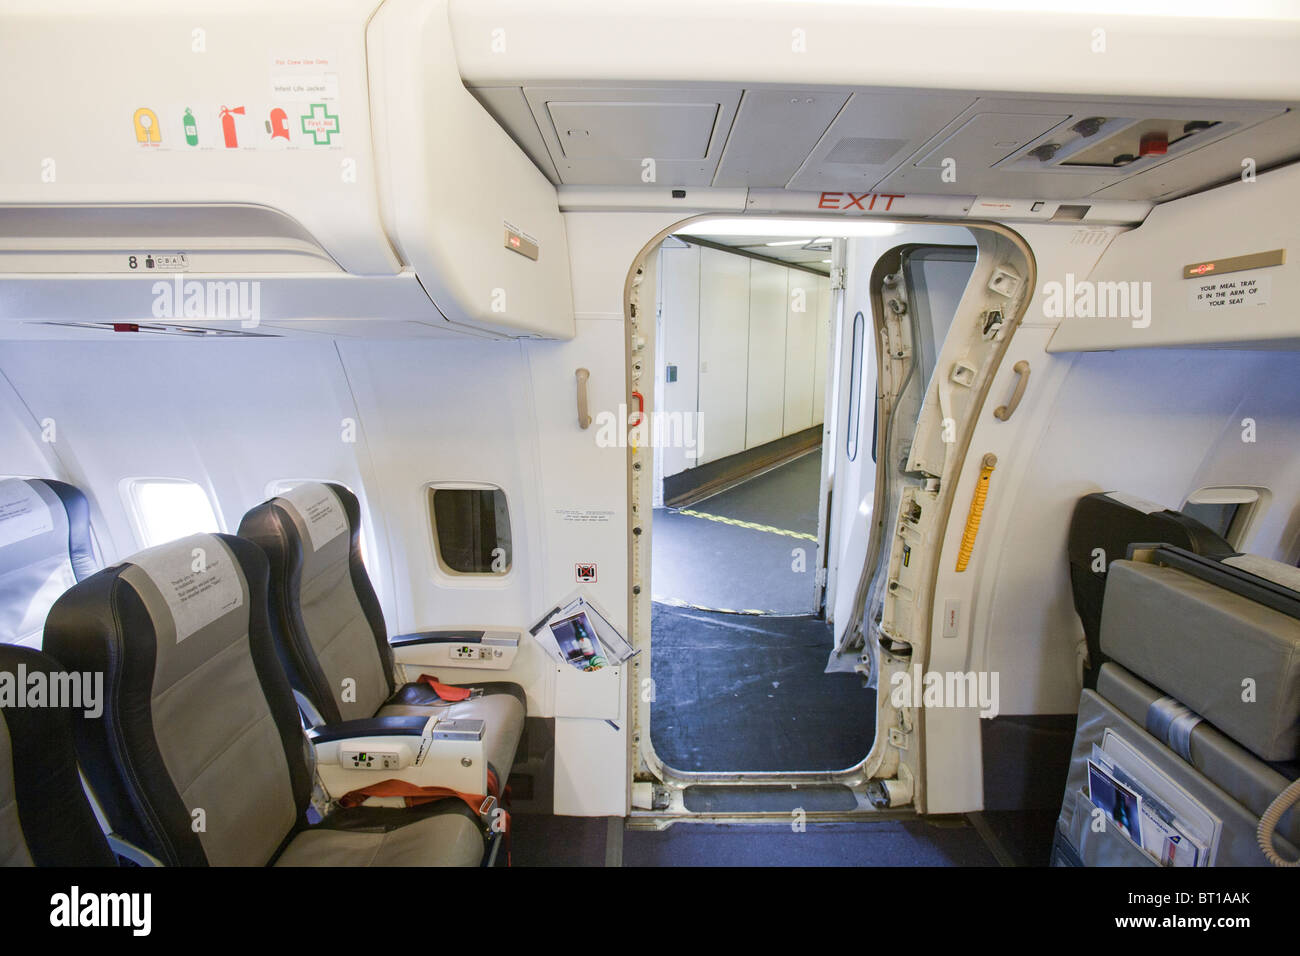 An exit door on a jet plane. - Stock Image & Emergency Exit Door Plane Stock Photos \u0026 Emergency Exit Door Plane ... Pezcame.Com